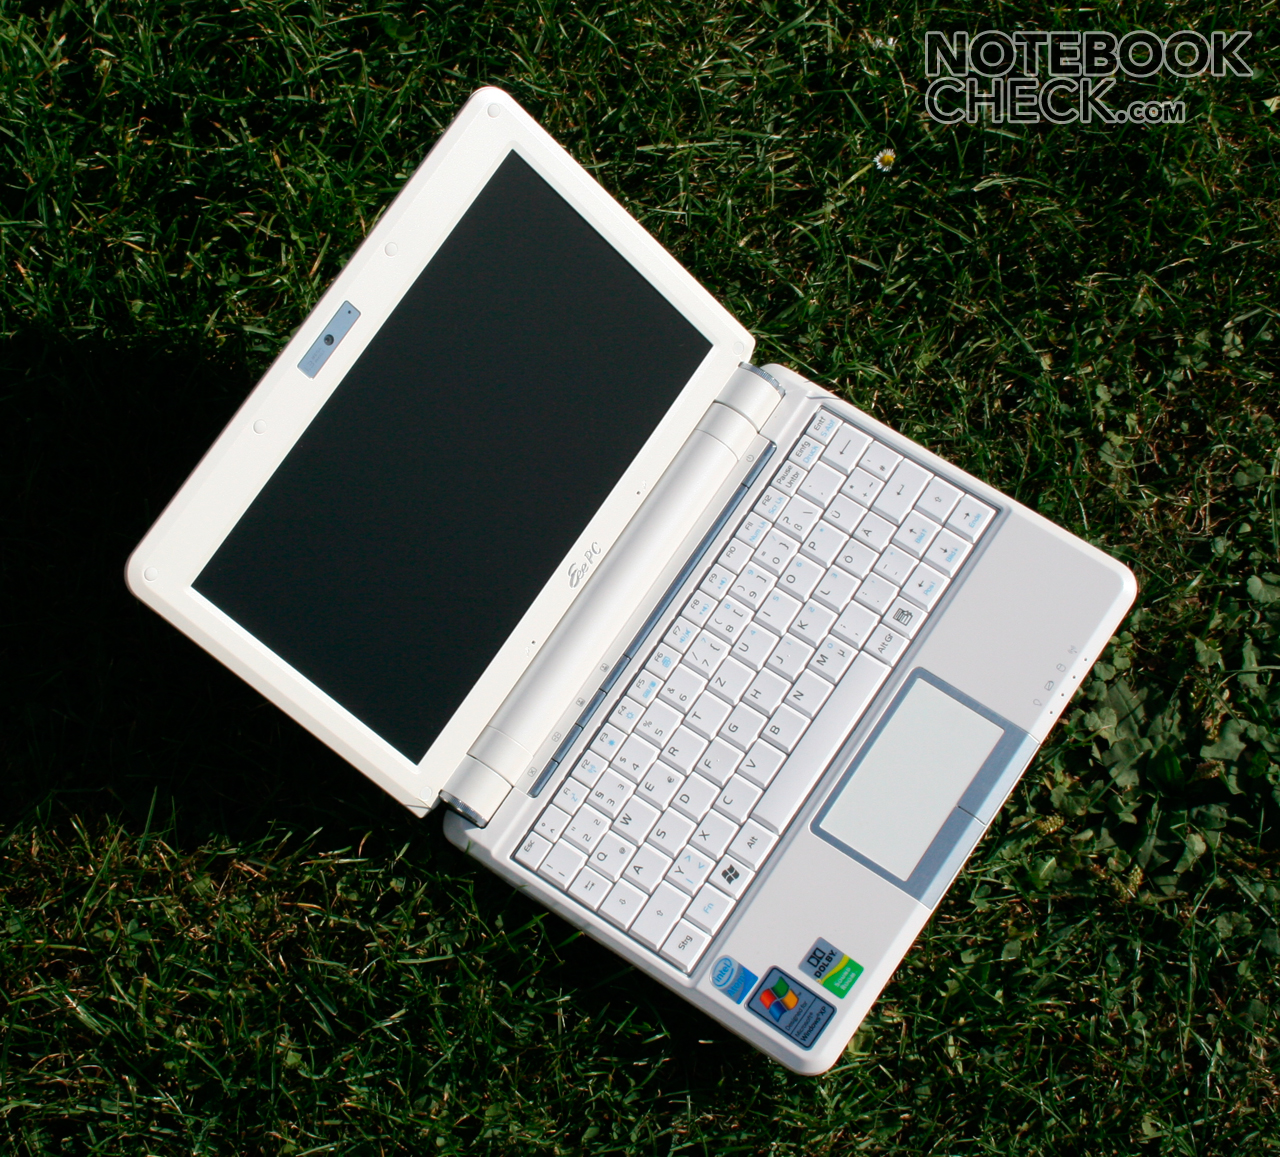 Ssd Eee pc 901 The Asus Eee pc 901 is a 8.9